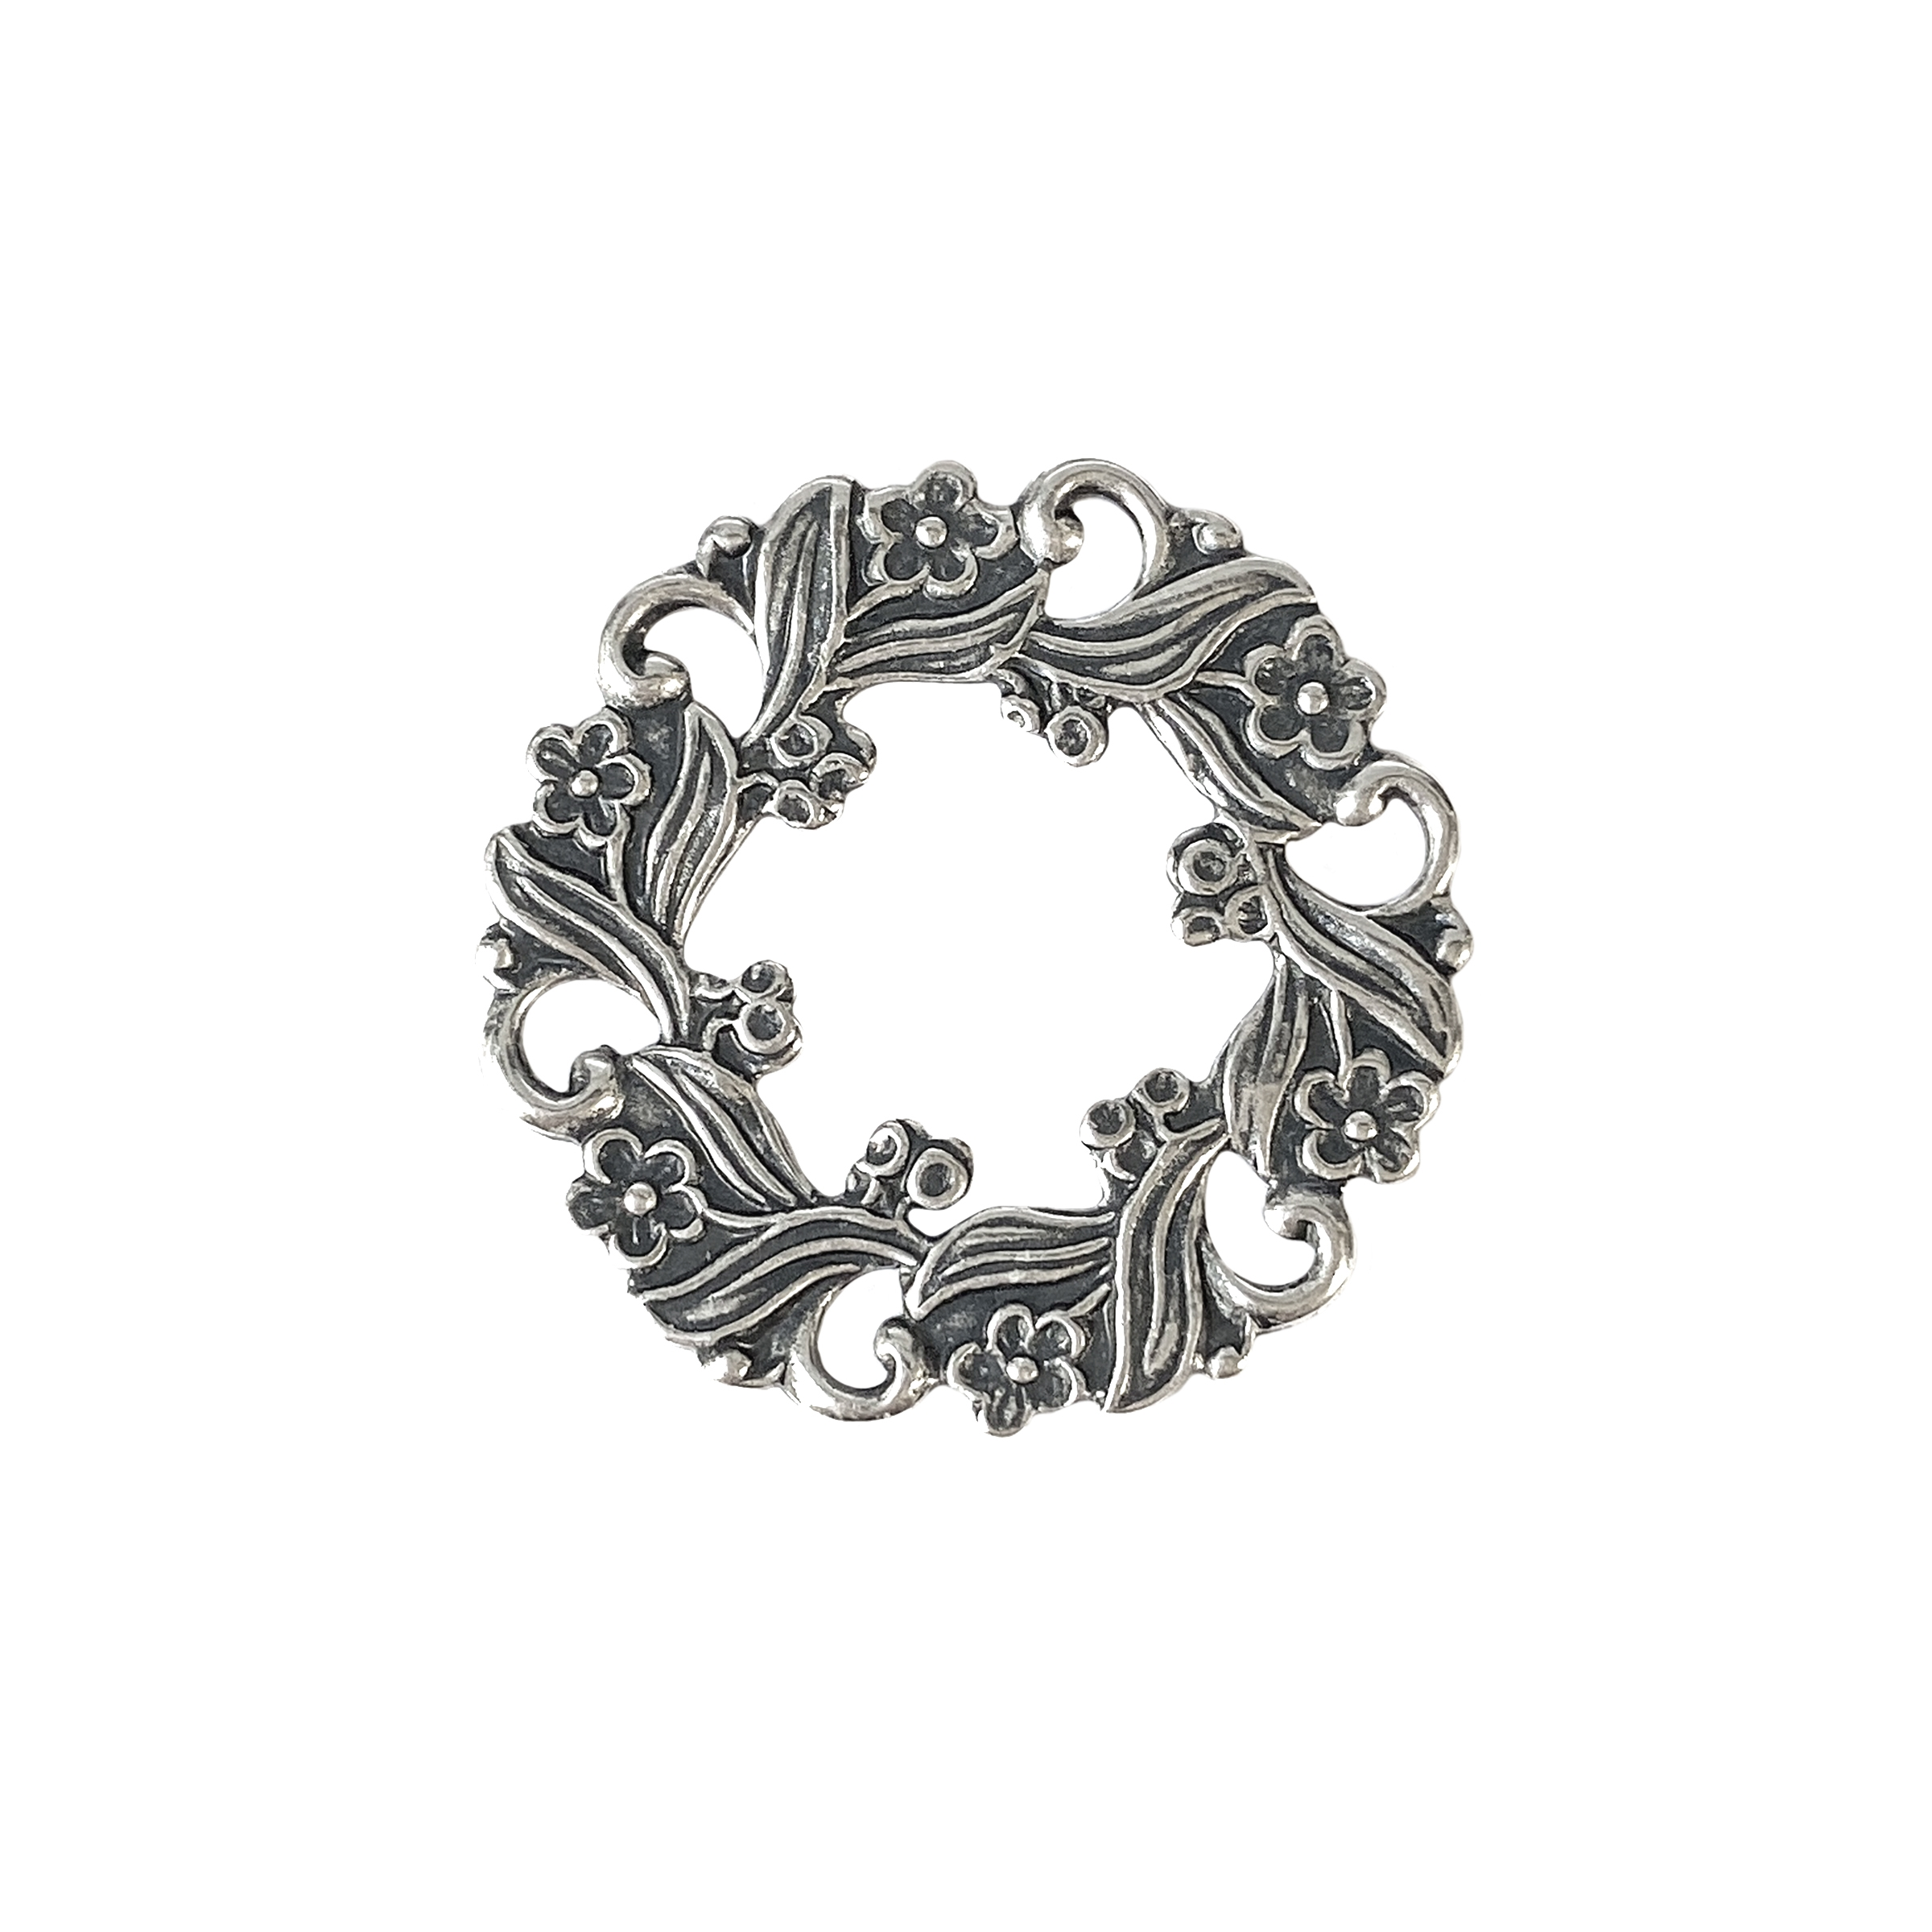 wreath, floral wreath, jewelry connectors, 03520, B'sue Boutiques, nickel free jewelry, US made jewelry, vintage jewellery supplies, jewelry making supplies, beading supplies, wiring supplies for jewelry making, silver plate